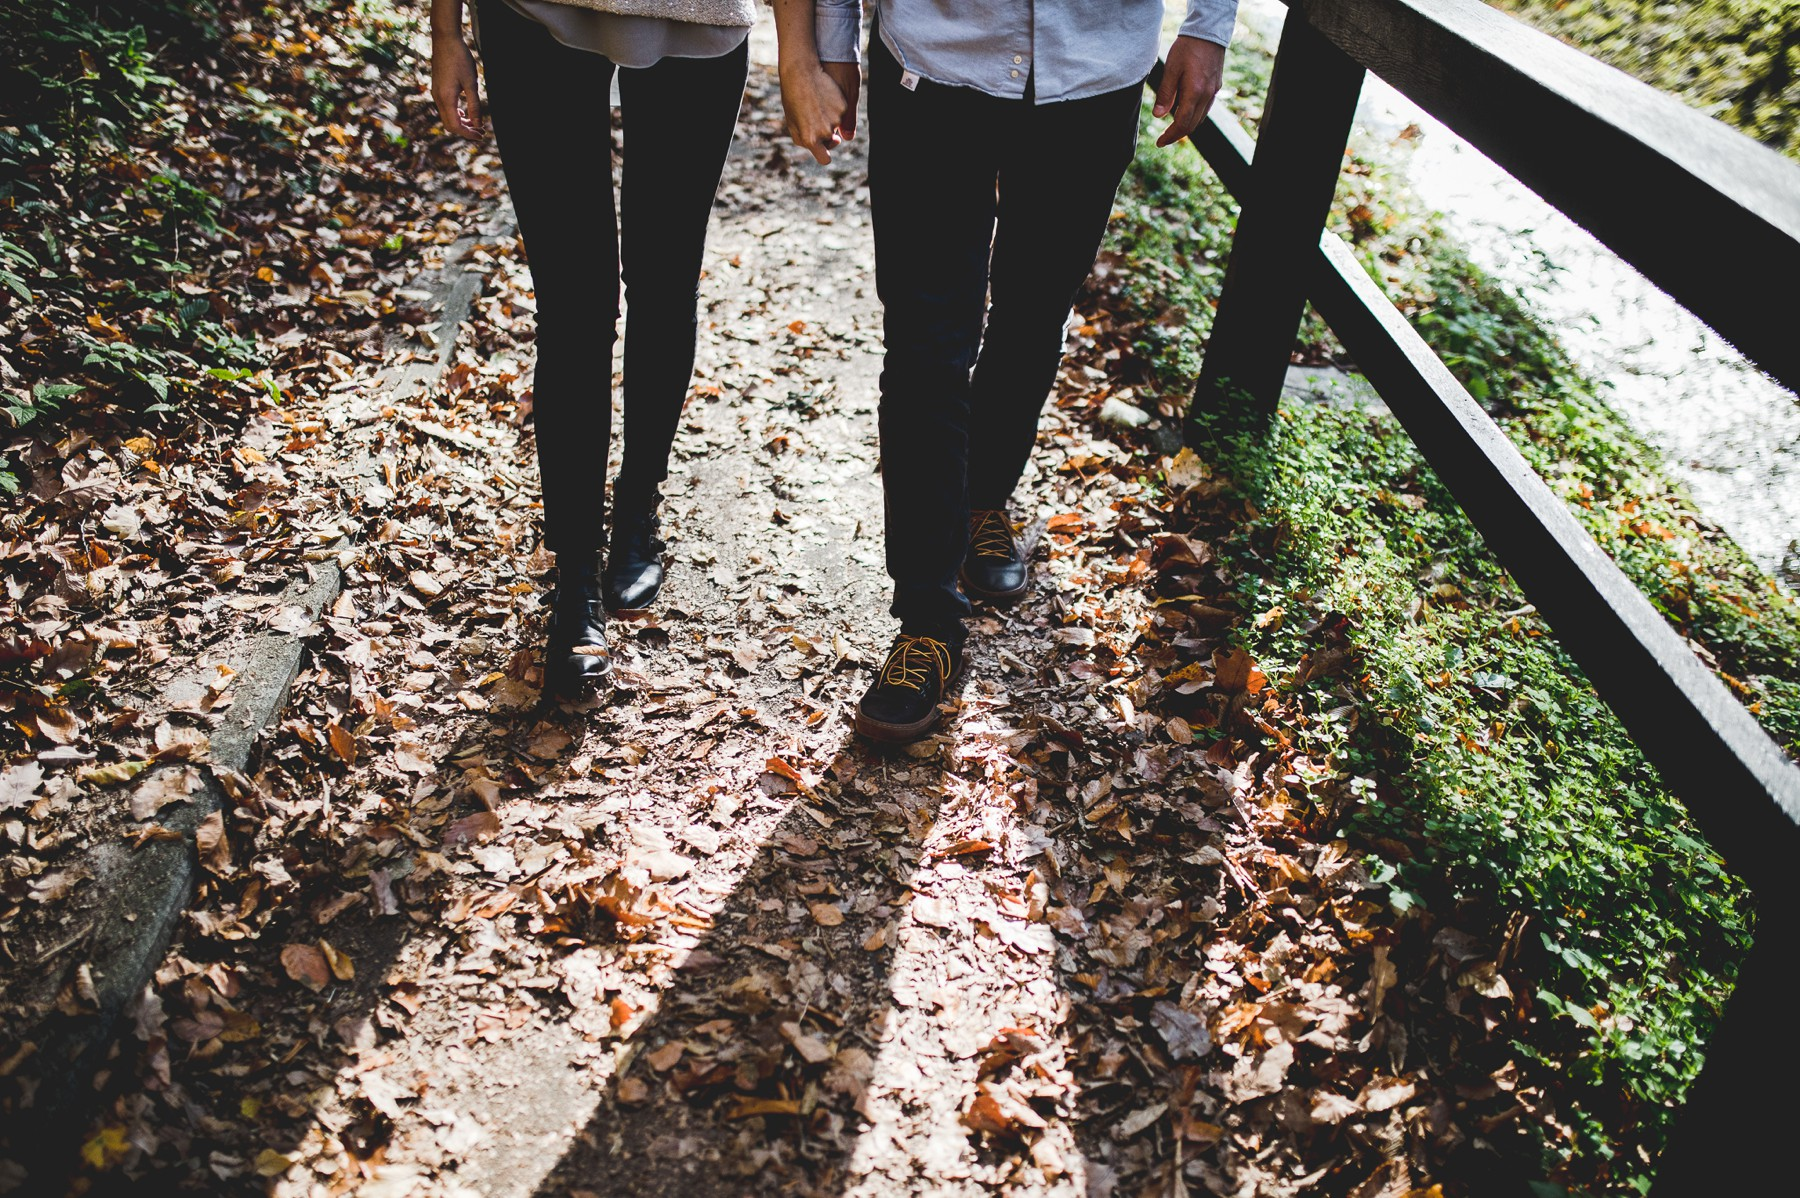 Holding hands and walking